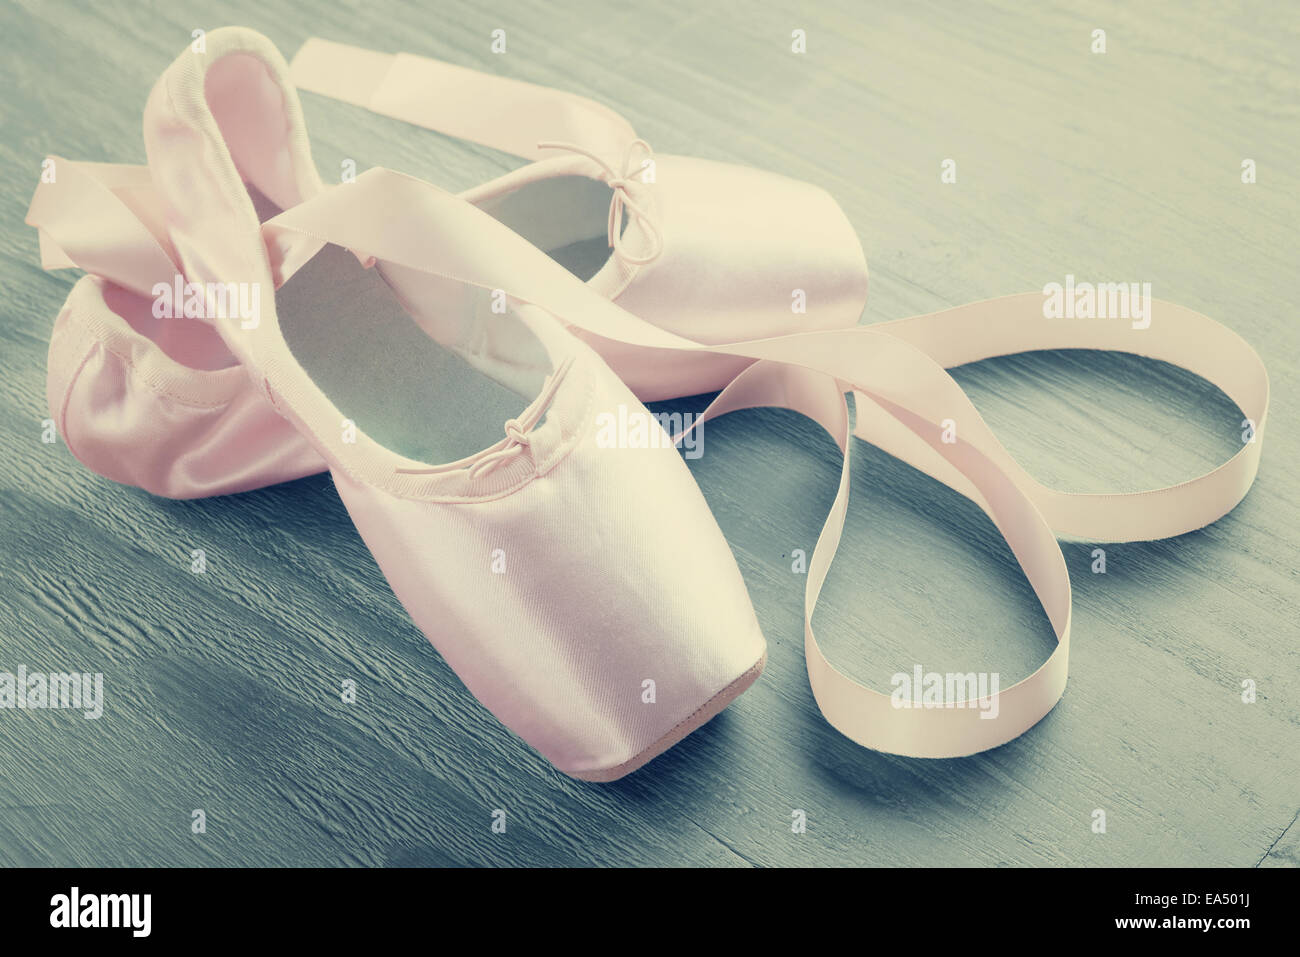 new pink ballet pointe shoes on  wooden background in vintage style - Stock Image